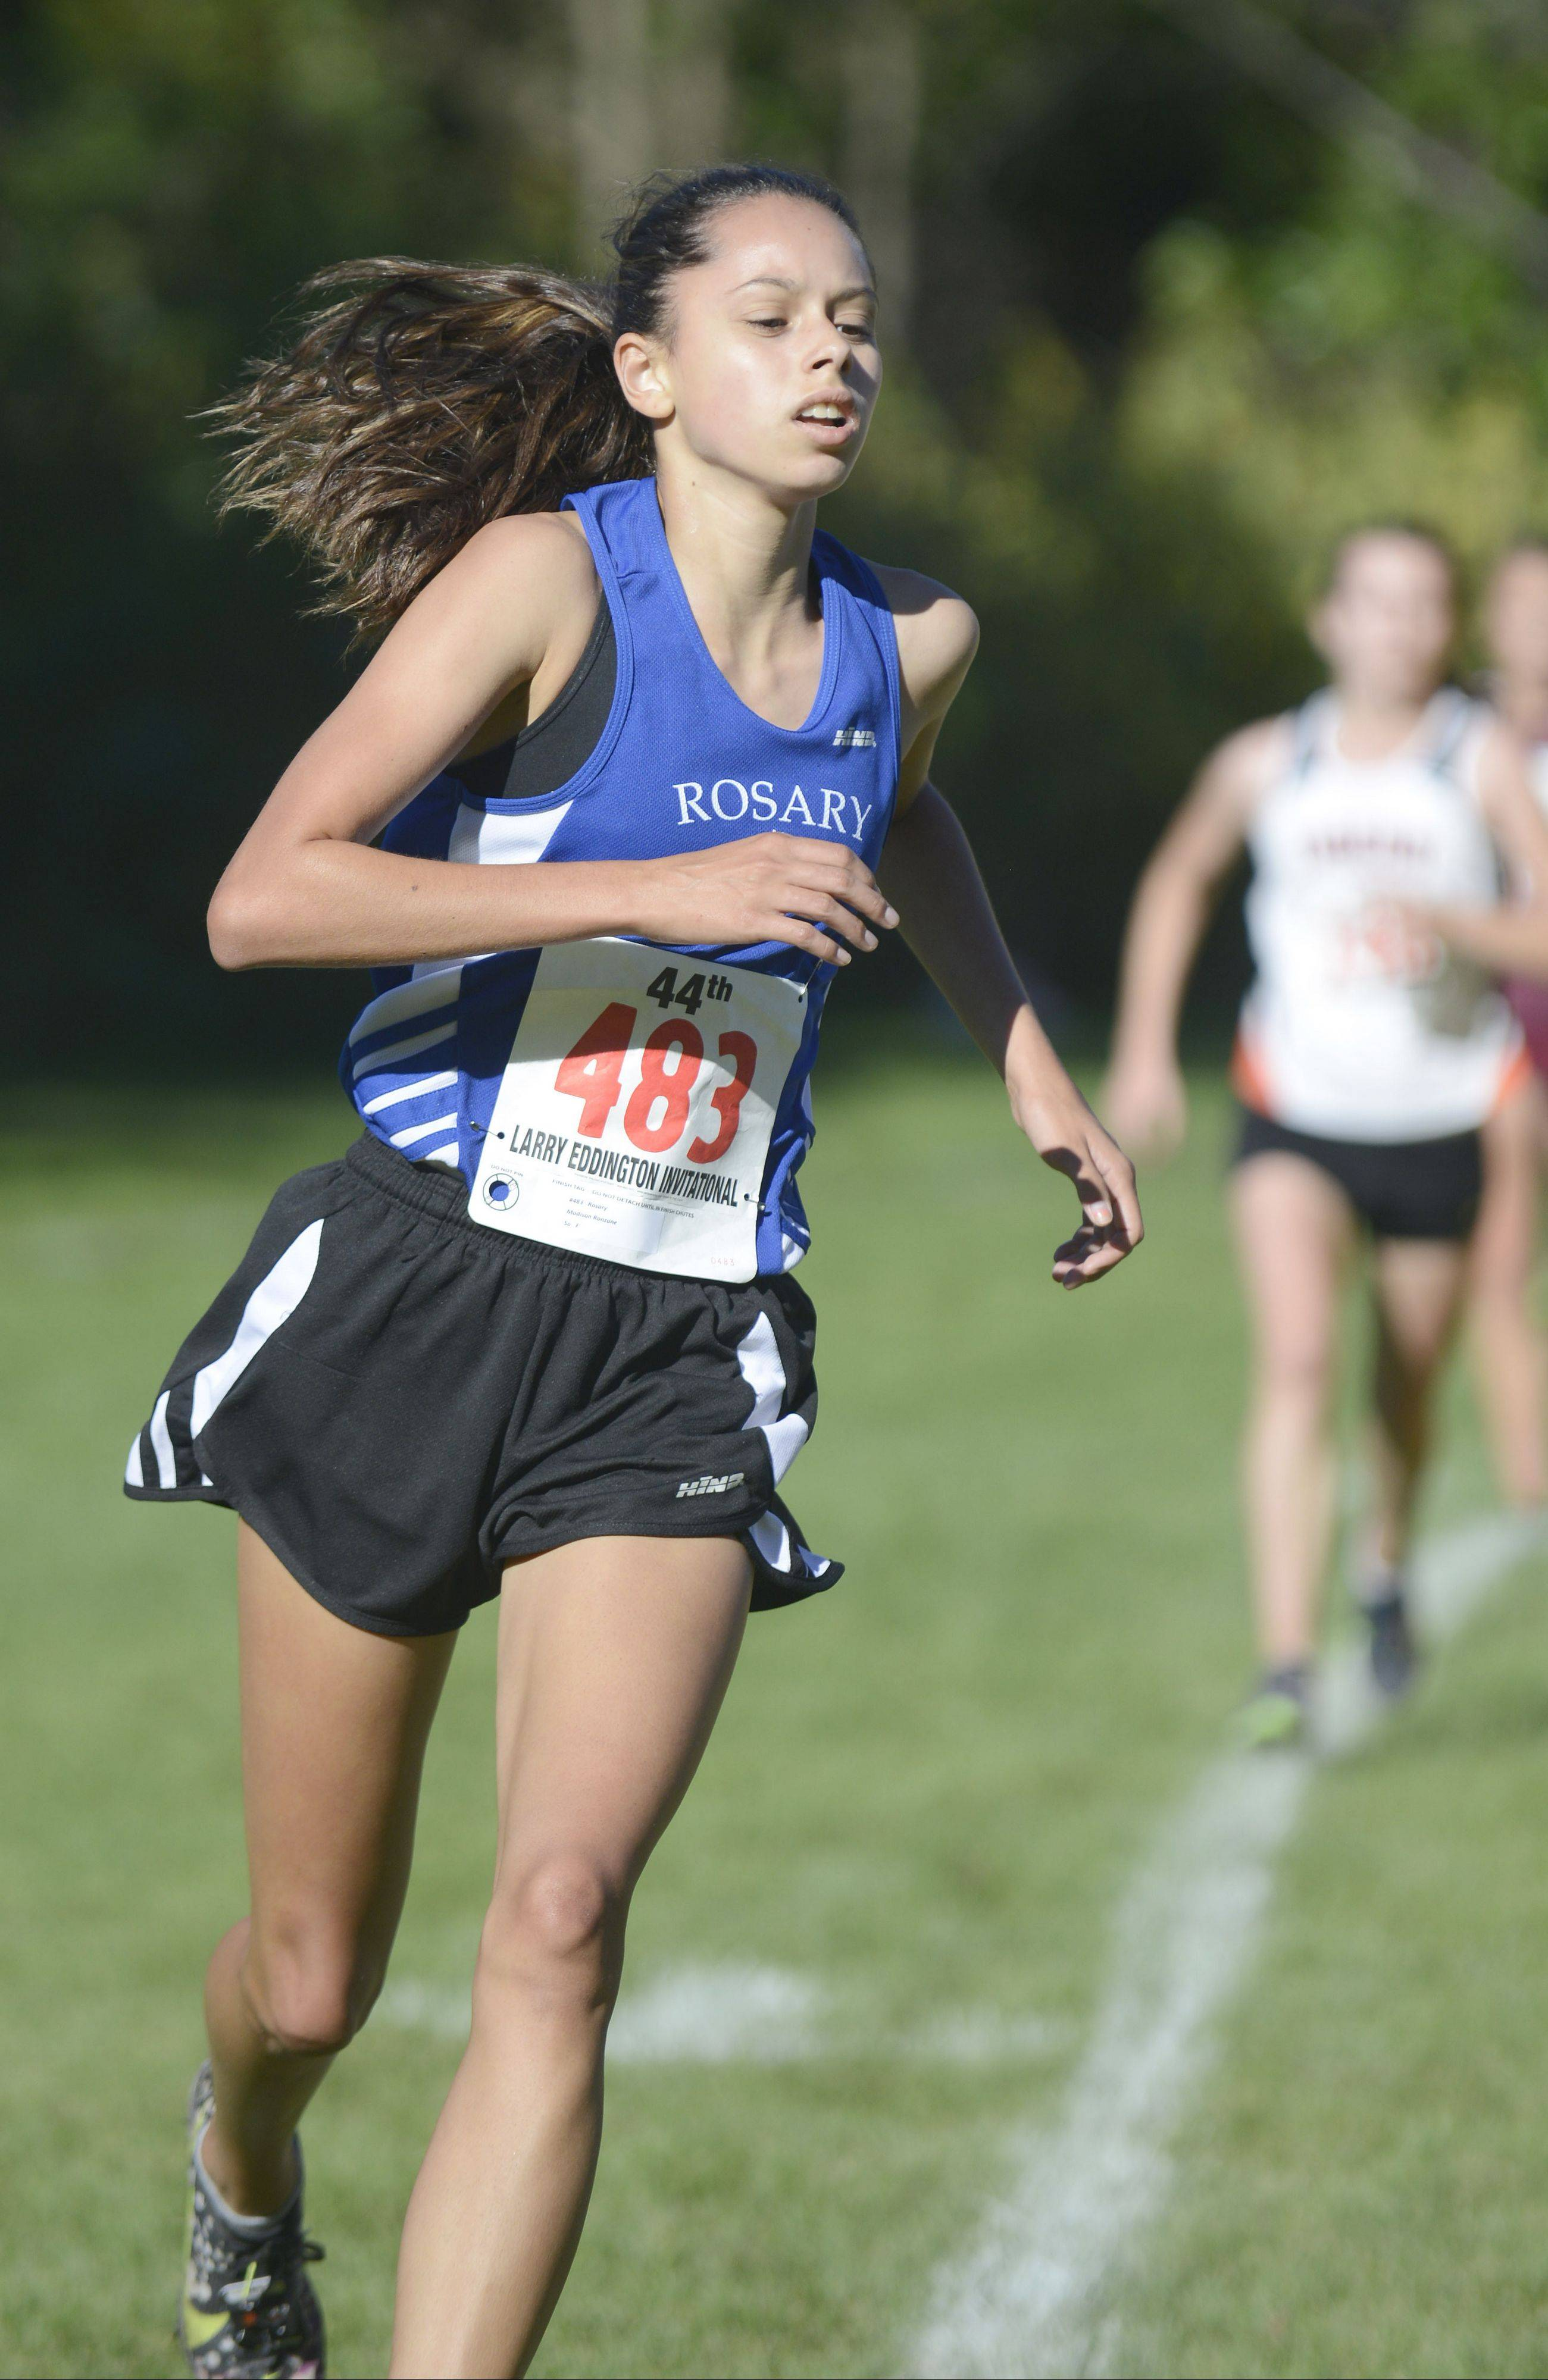 Rosary's Madison Ronzone takes first place for the Royals and fifteenth overall at the Kaneland Invitational cross country meet in Elburn on Saturday, September 21.